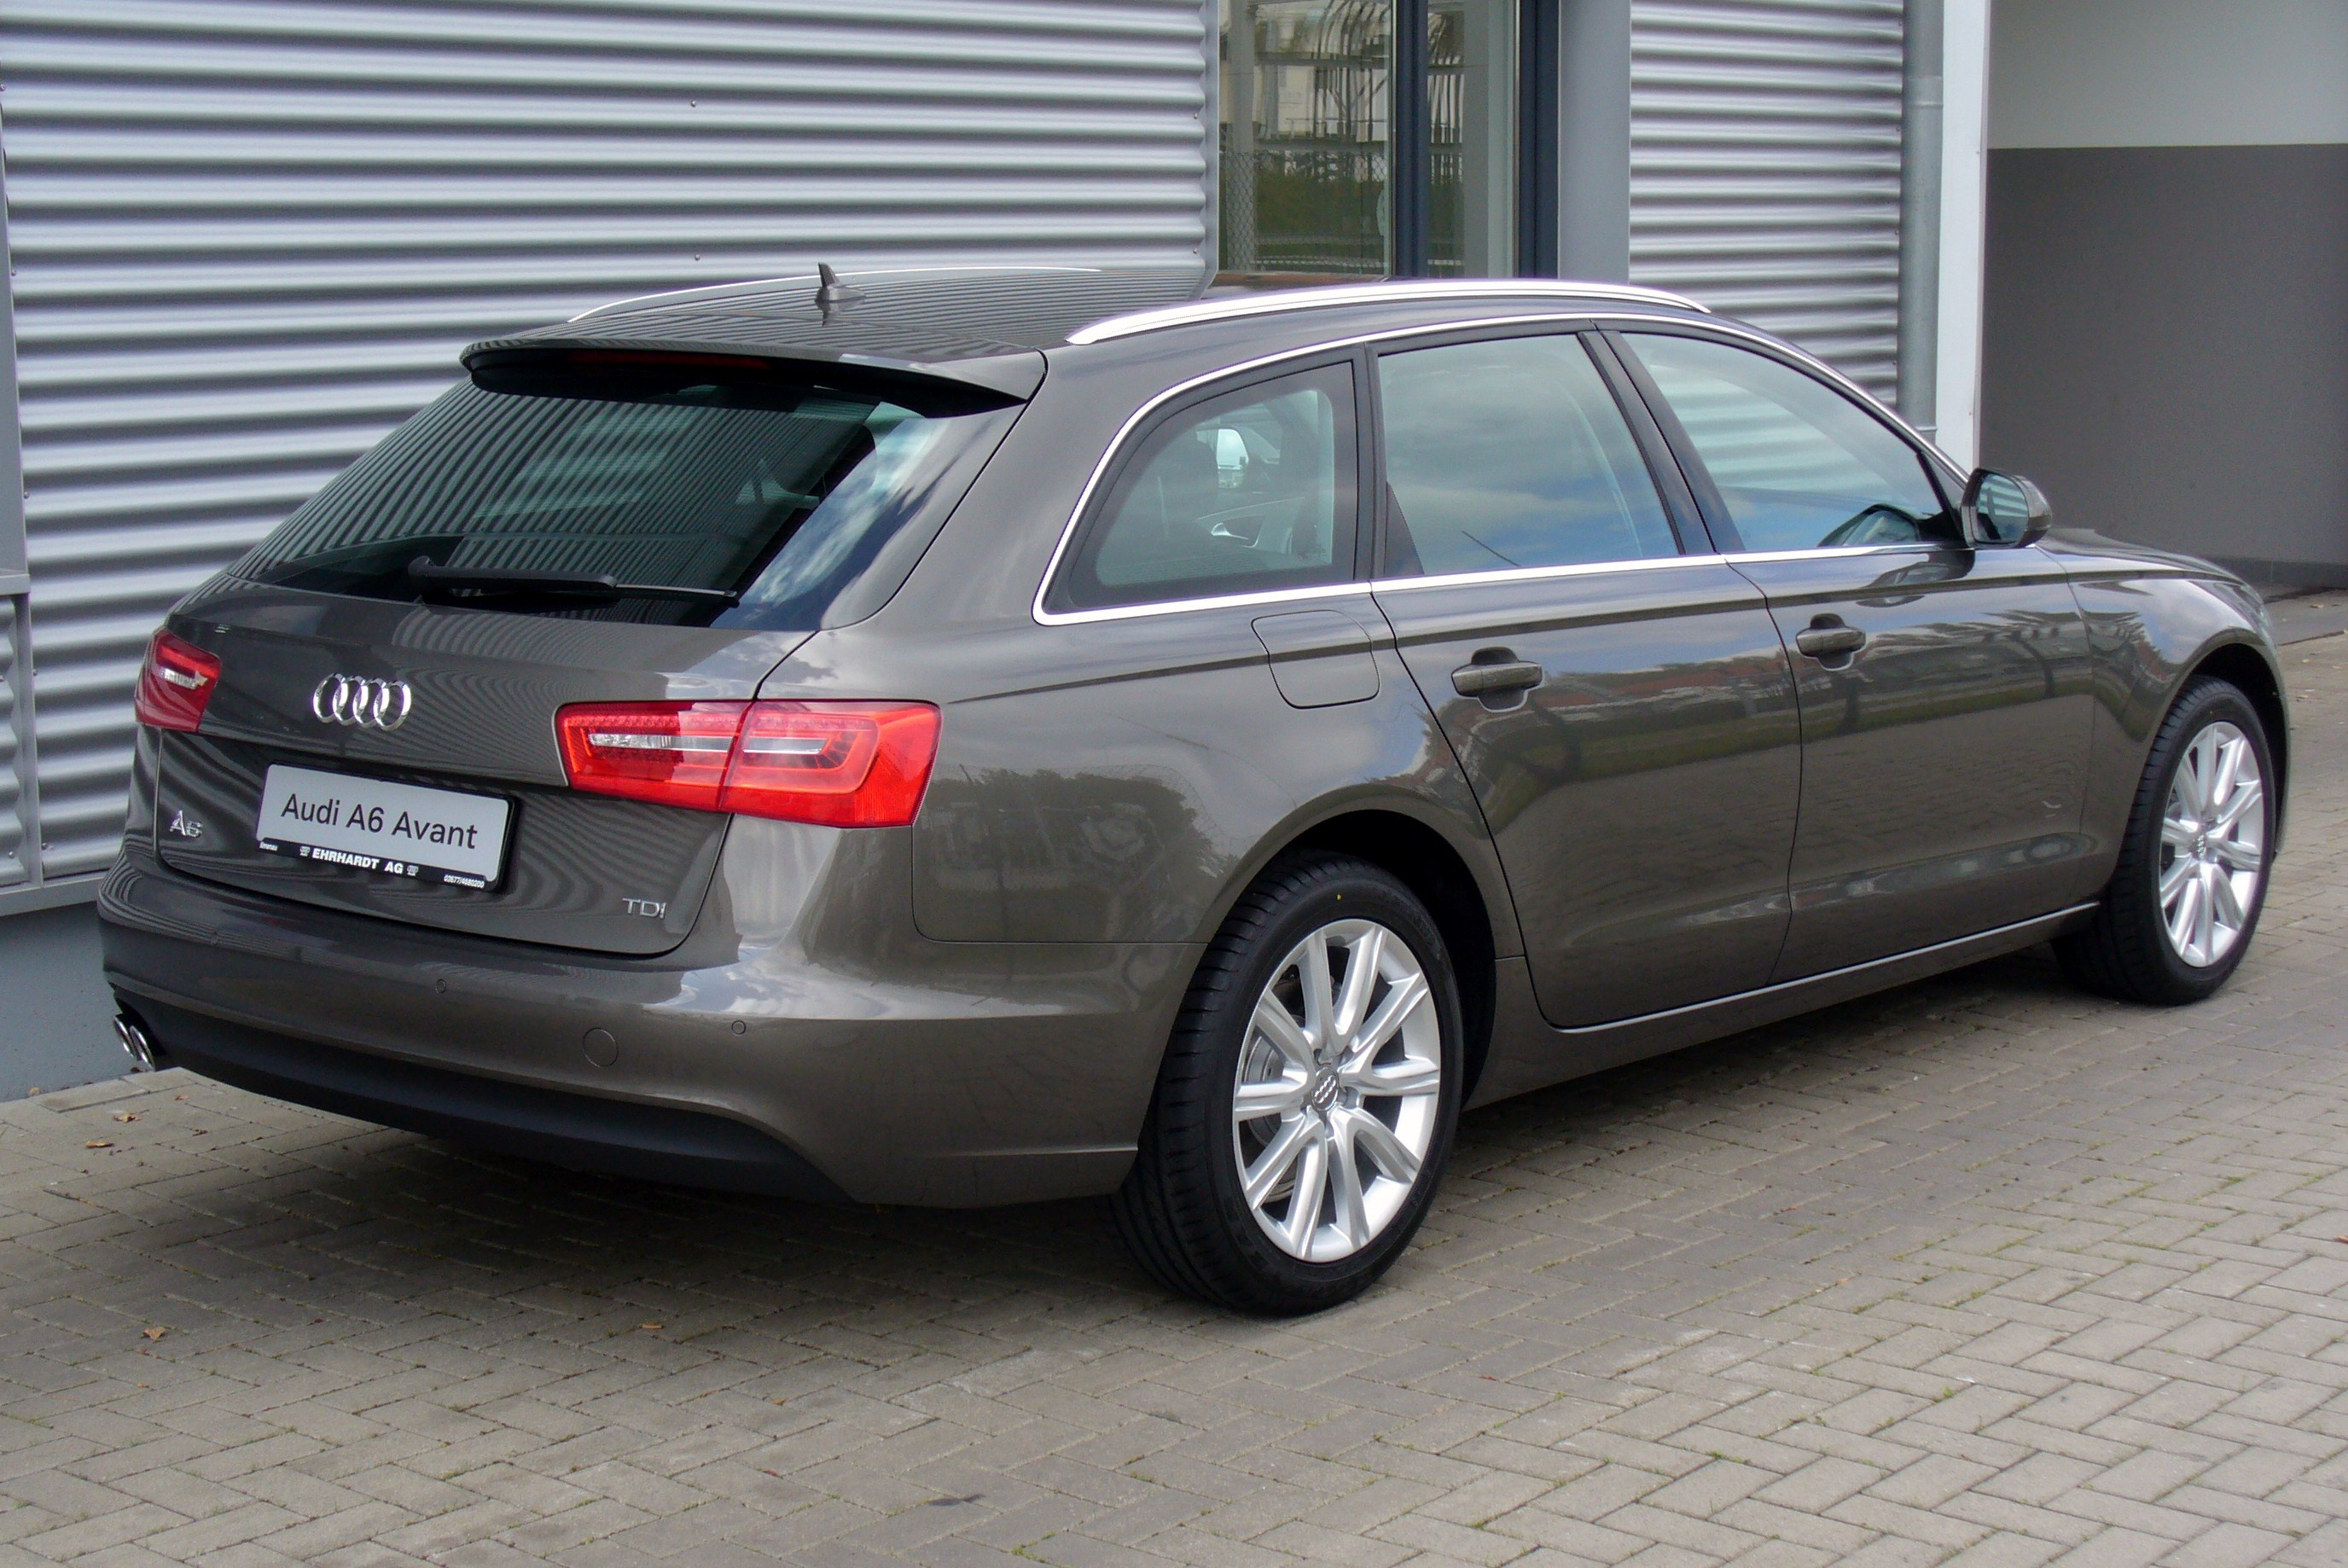 file audi a6 avant 2 0 tdi dakotagrau seite jpg. Black Bedroom Furniture Sets. Home Design Ideas